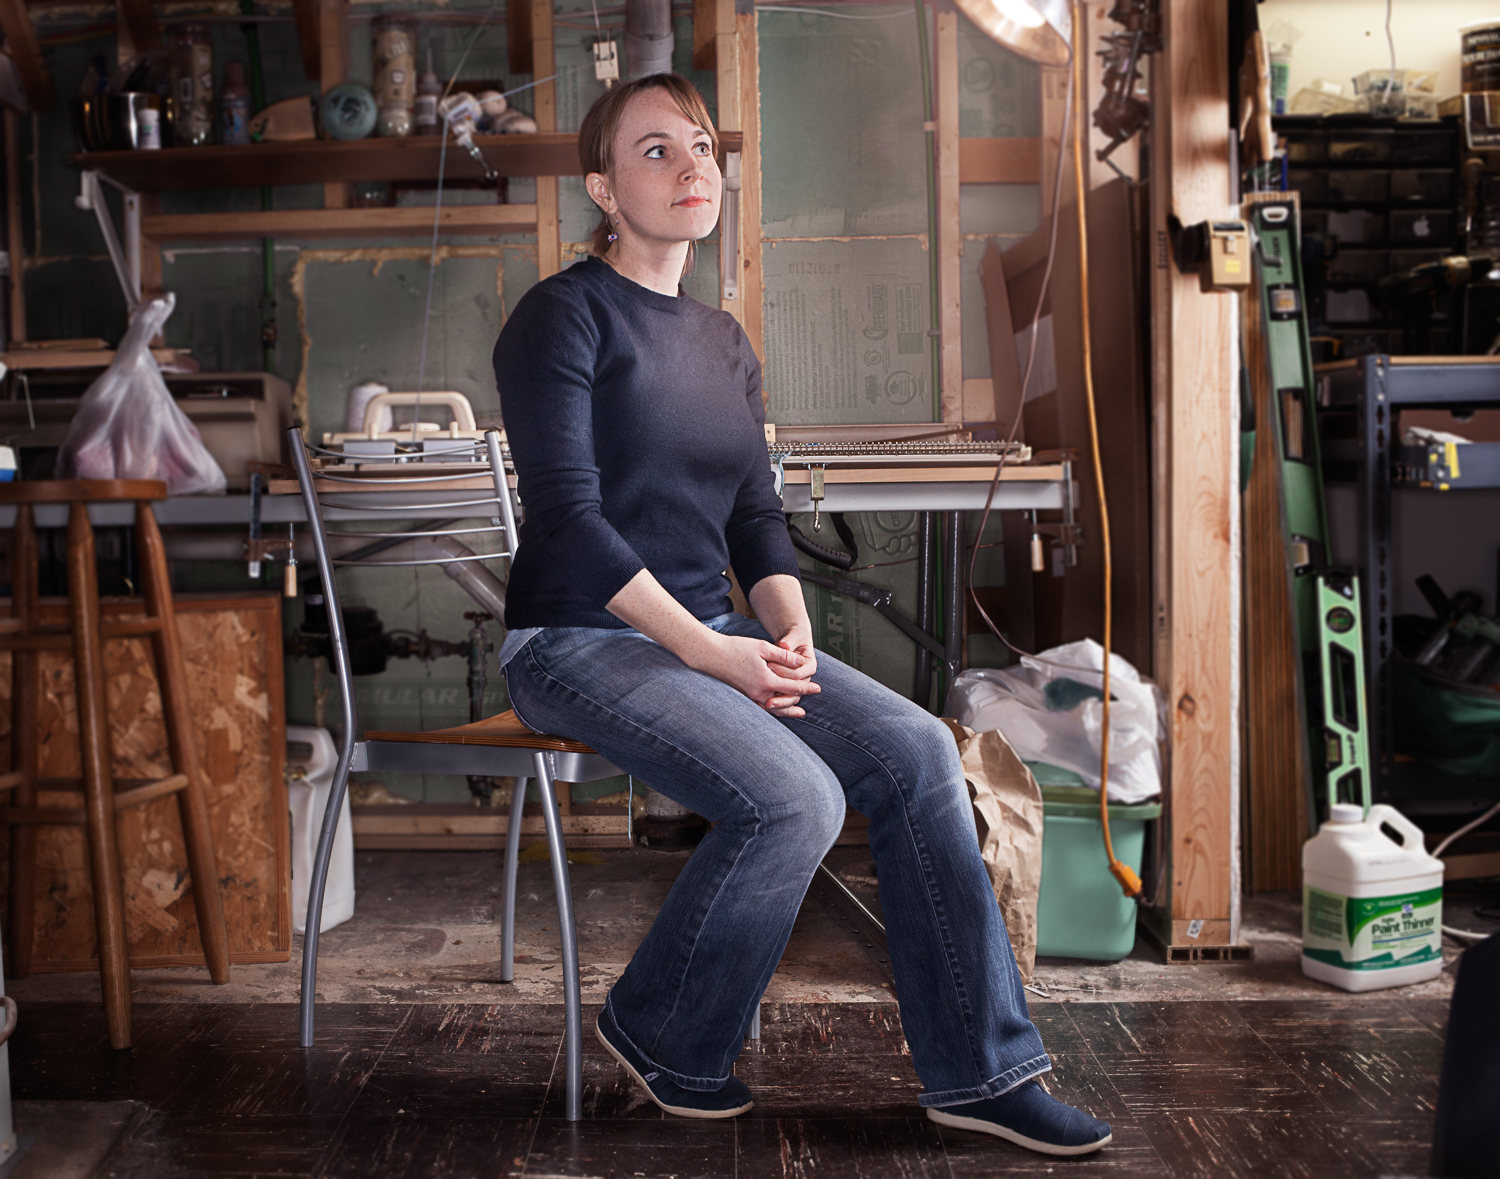 artist in her work space